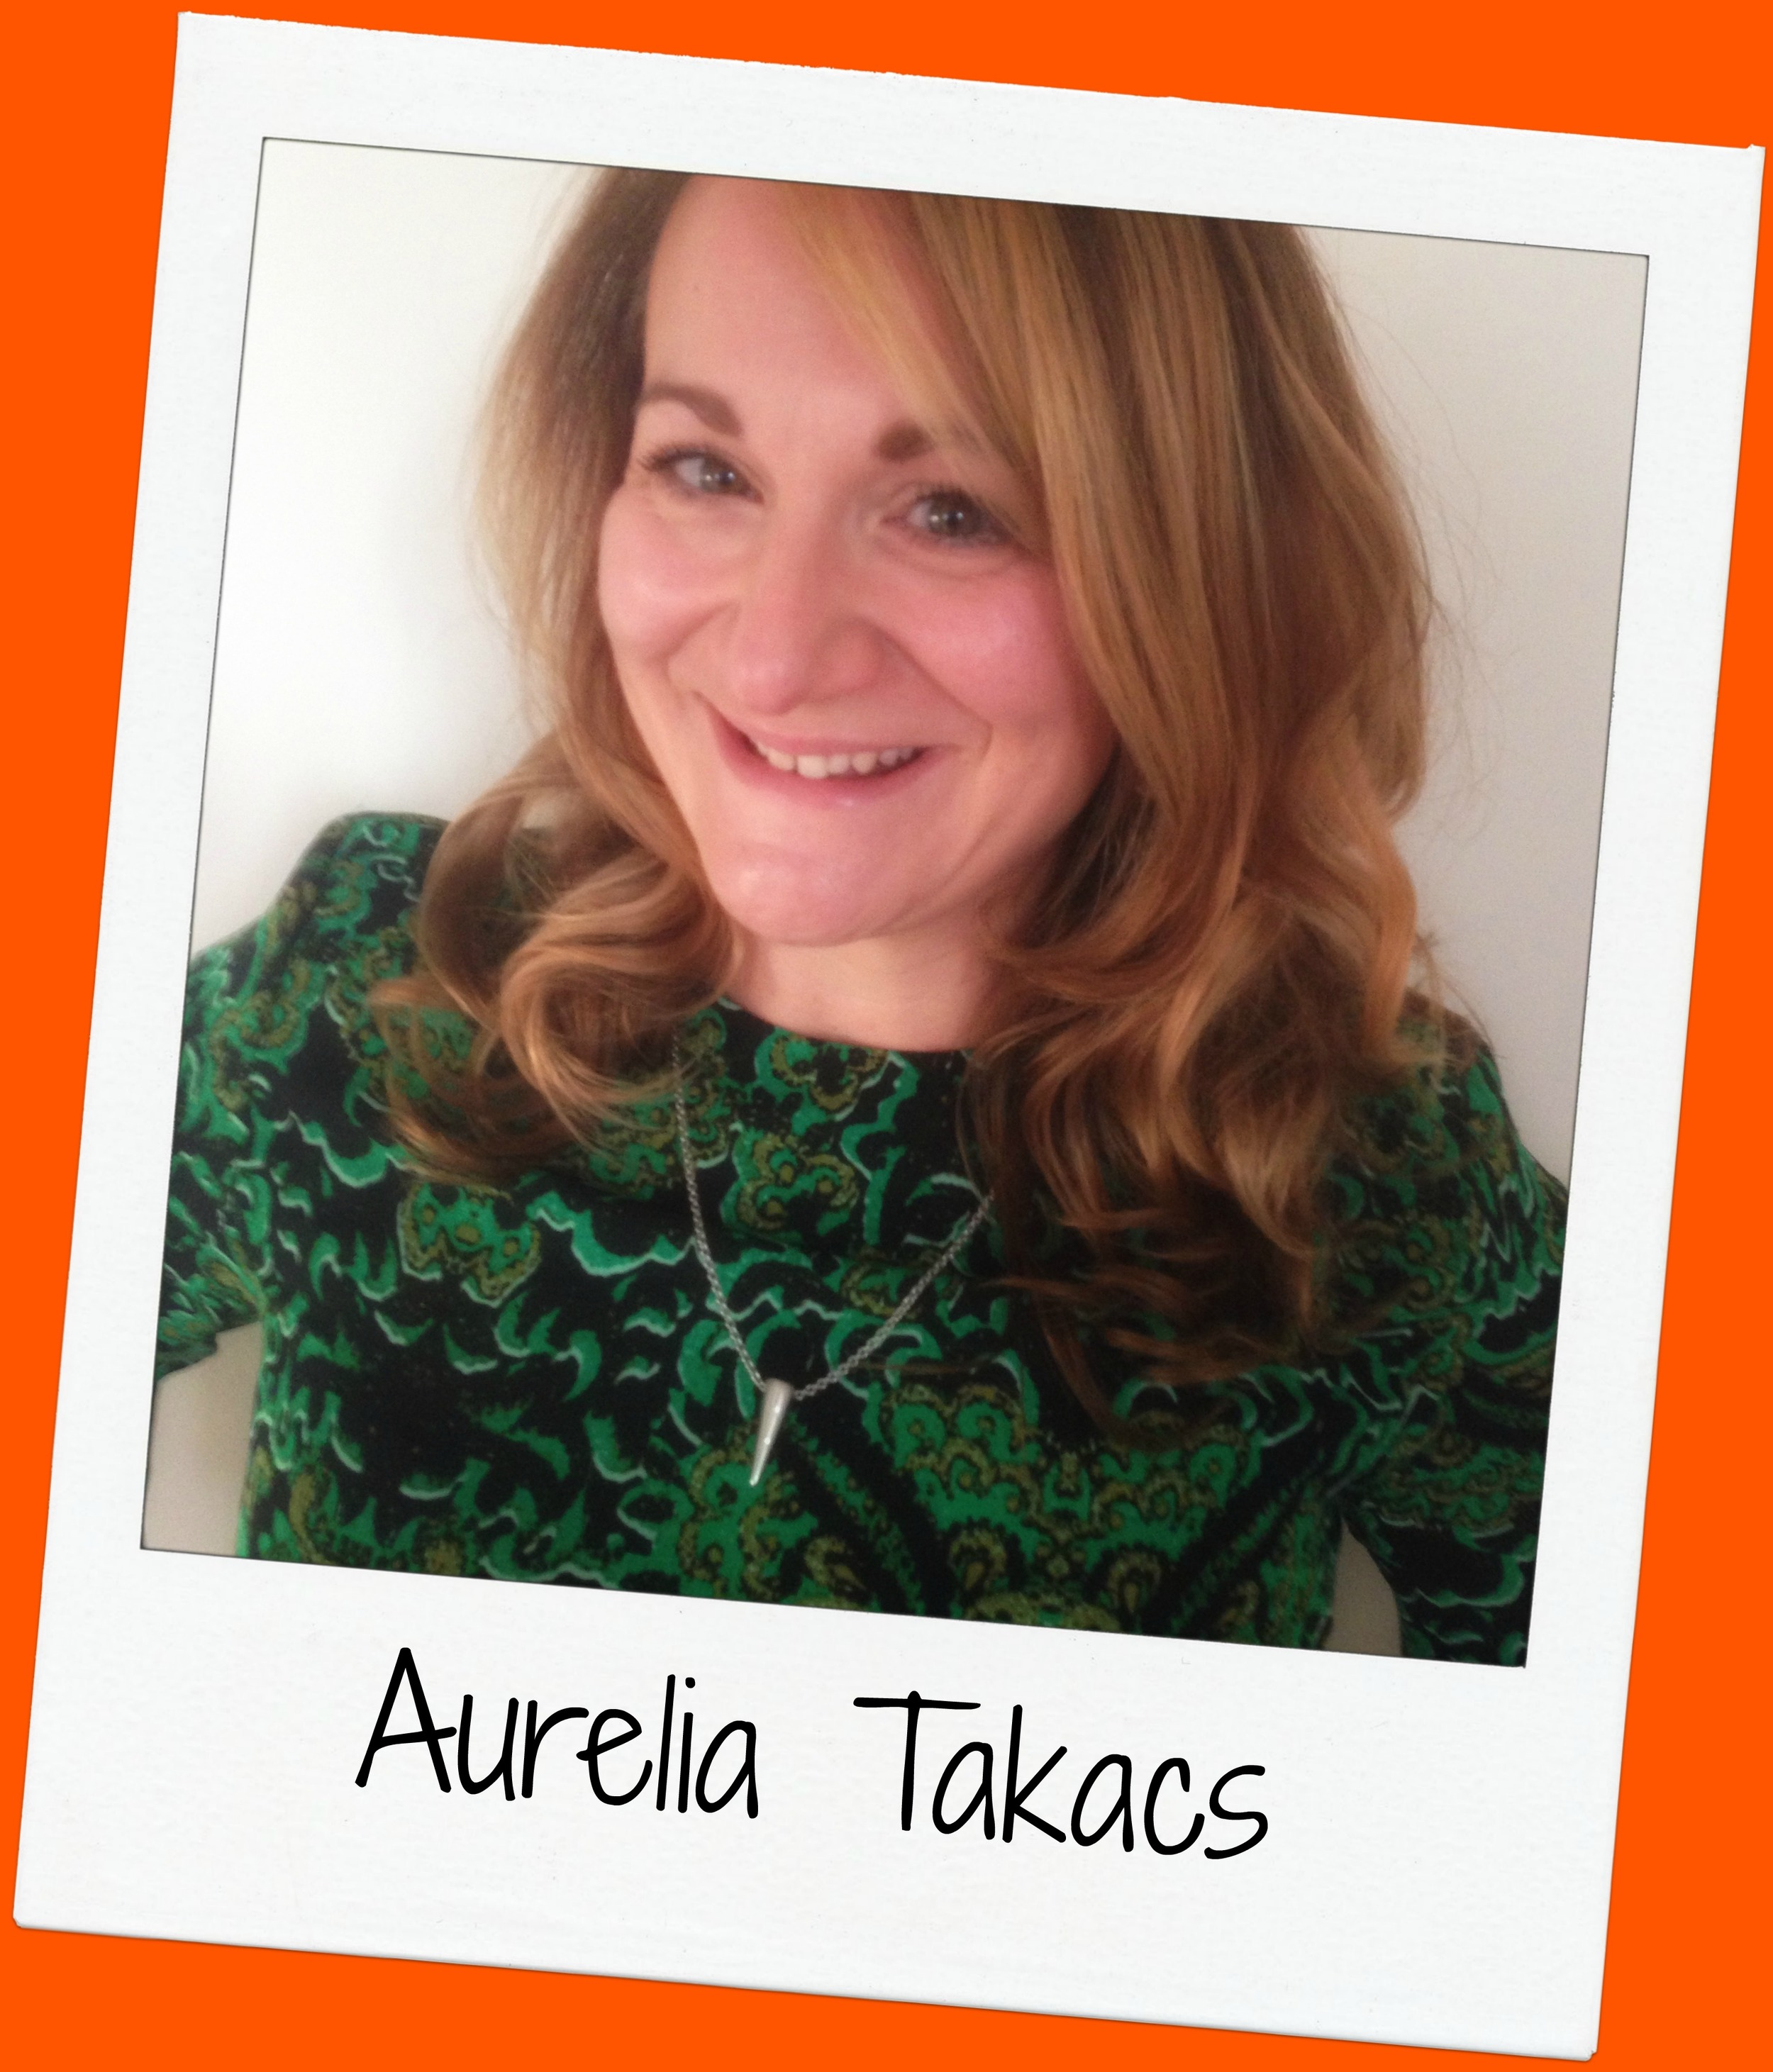 """Aurelia is on our advisory board for corporate partnerships and is our diversity & inclusion expert, ! She's piloted our'g4g@work' concept w/ Cisco, which we will use with other companies around the world! As a """"world citizen"""" in Brussels, she loves kitchen science and watching """" The IT Crowd """"! She hopes to inspire the next generation of female STEM leaders around the world!  All about her launch in Jordan here!"""